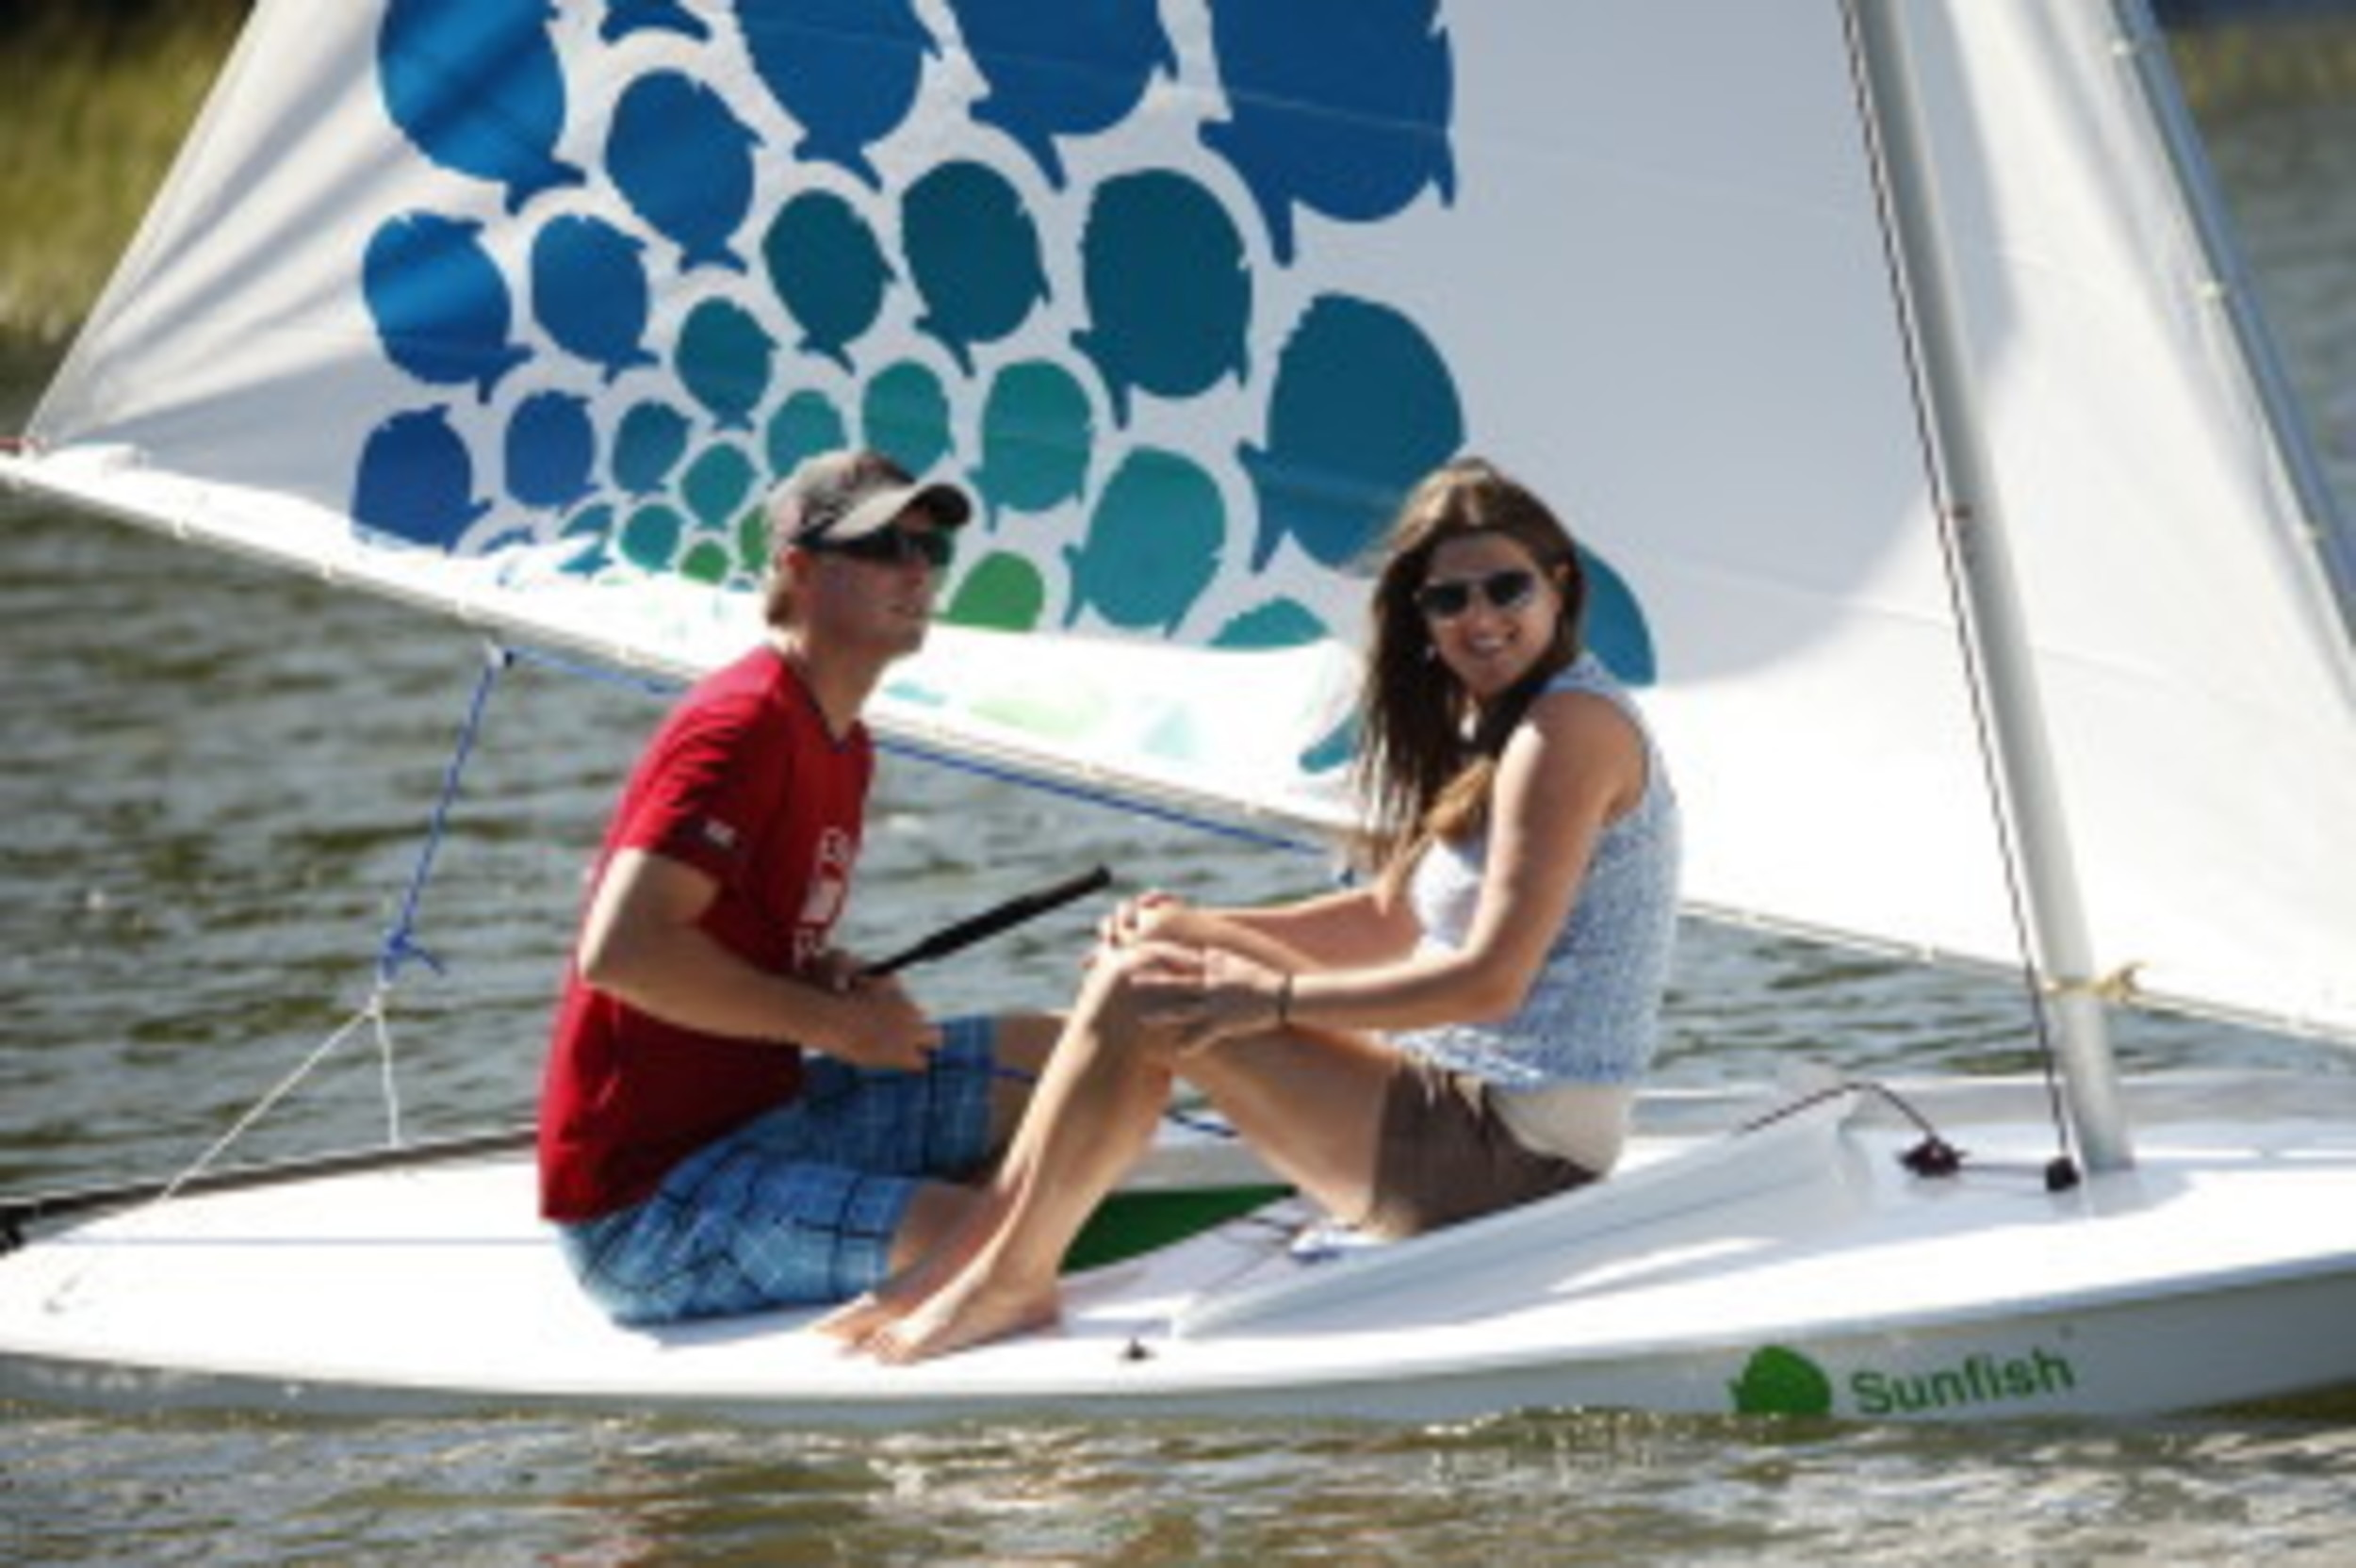 The 60th anniversary Sunfish sports a whole school of the little round fish on its sail.